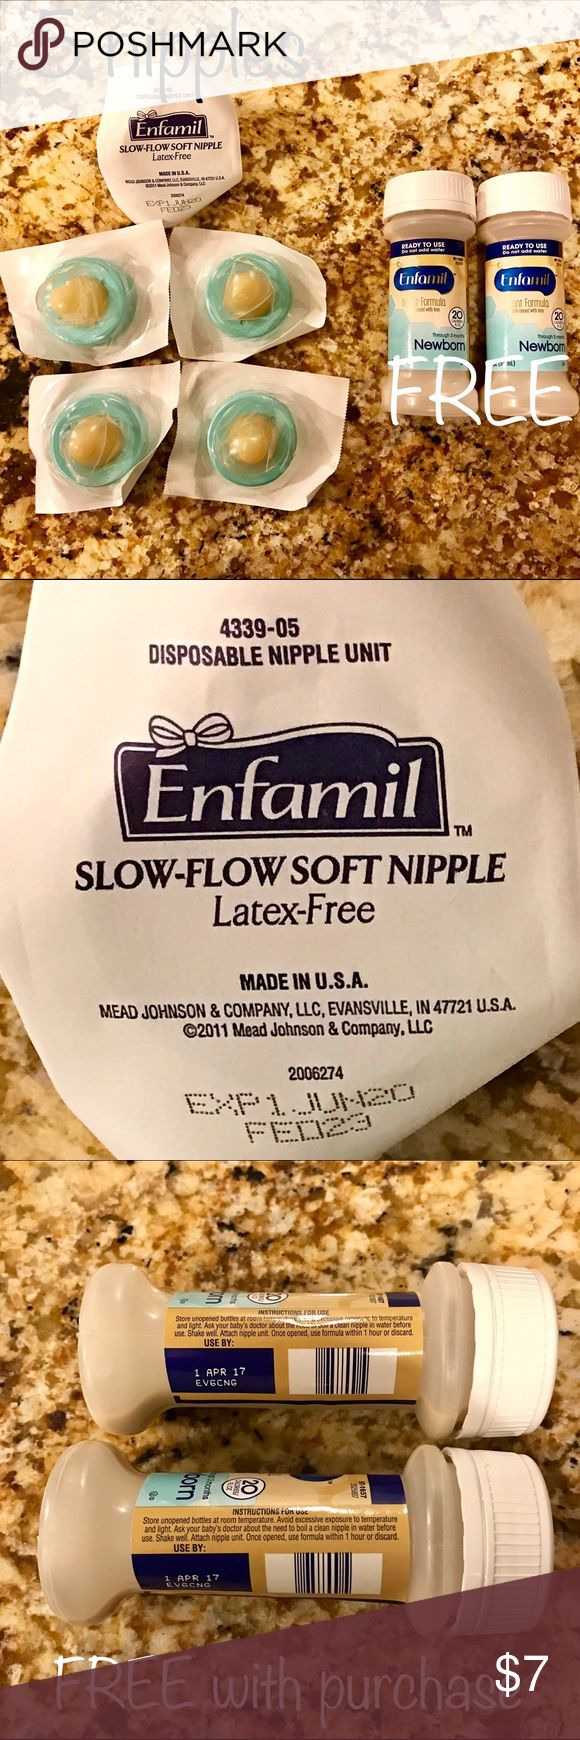 5 sterile nipples + 2 FREE formula Quantity of 5 sterile Enfamil slow-flow soft nipples Latex free Exp. June 2020 Perfect for on the go feedings!  Enjoy purchase with 2 FREE 2 fl oz Enfamil infant formula  Exp. April 2017  Everything is sterile and in original seal Price is firm Bundle and save! Enfamil Other